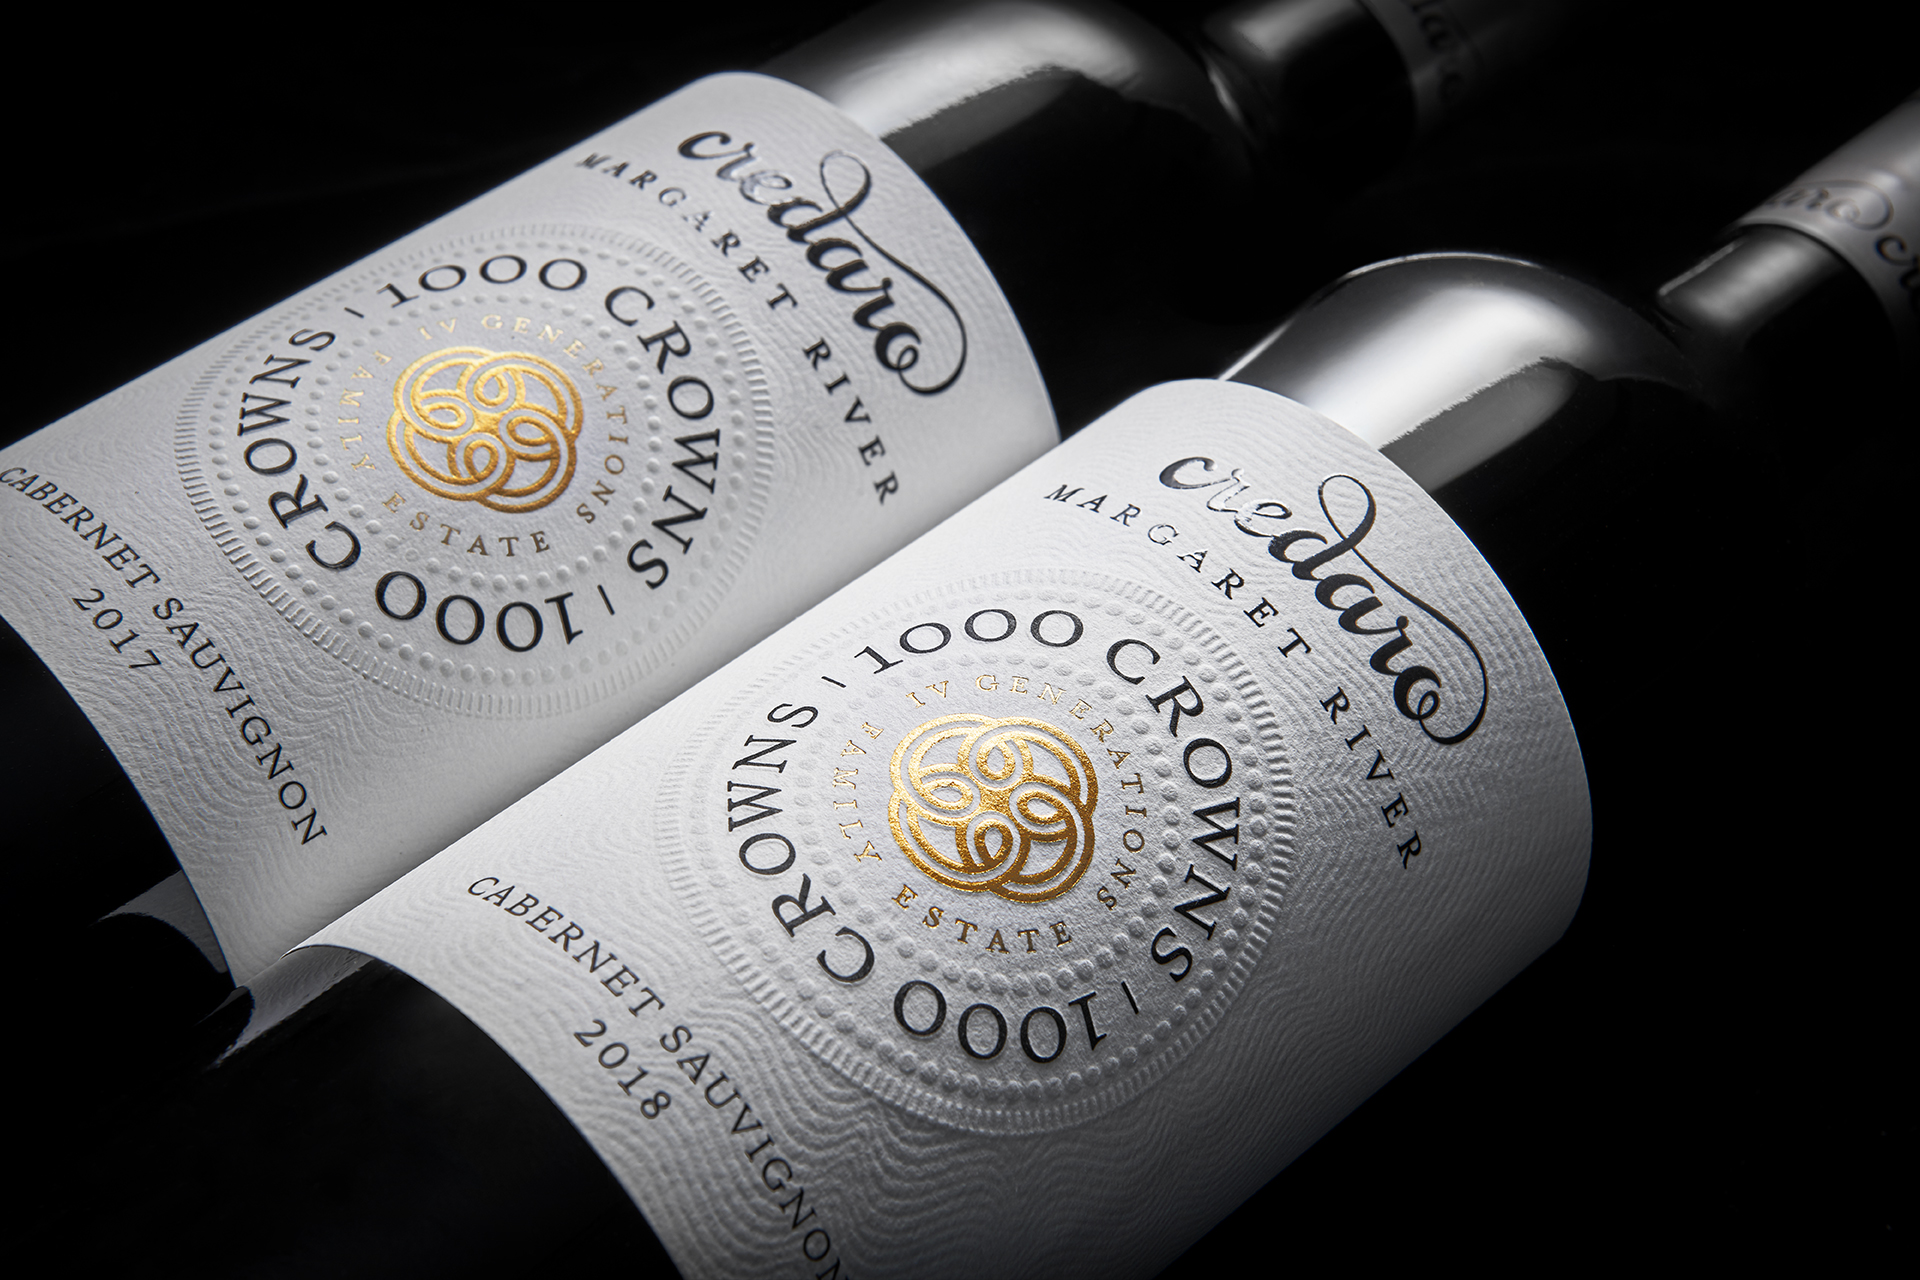 The 1000 Crowns Series of Wines